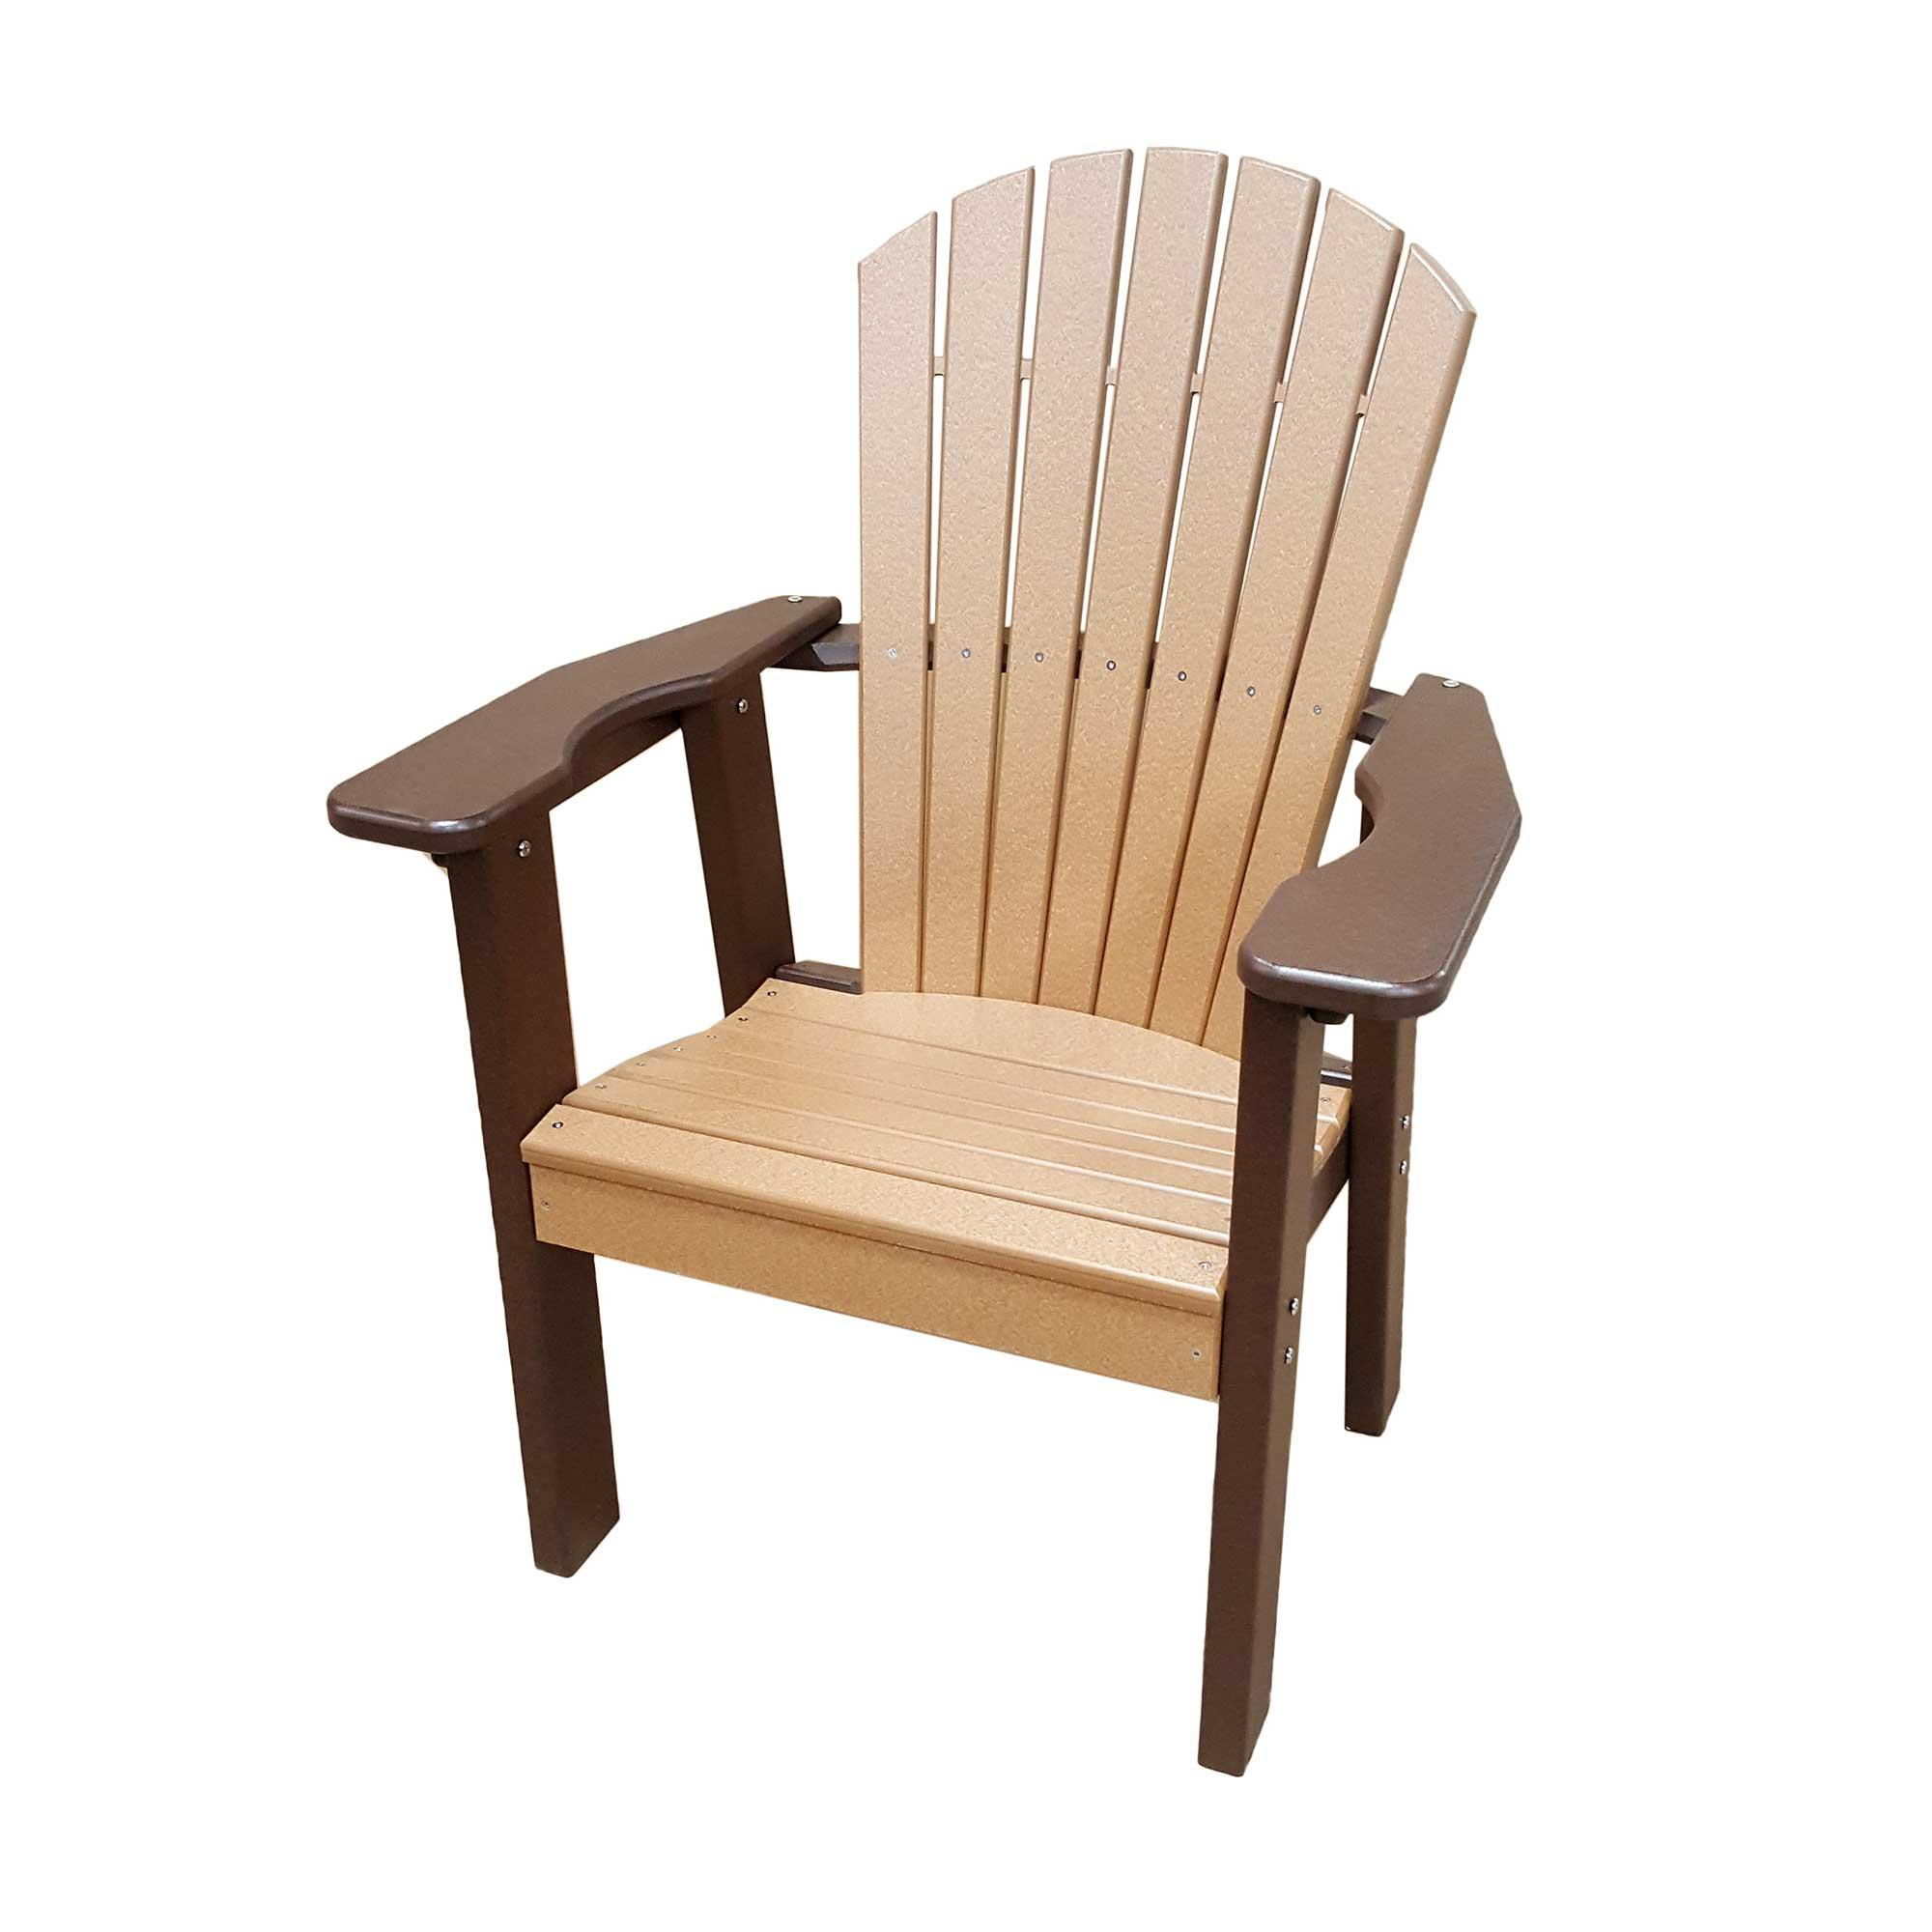 Upright Adirondack Chair  Perfect Choice Furniture